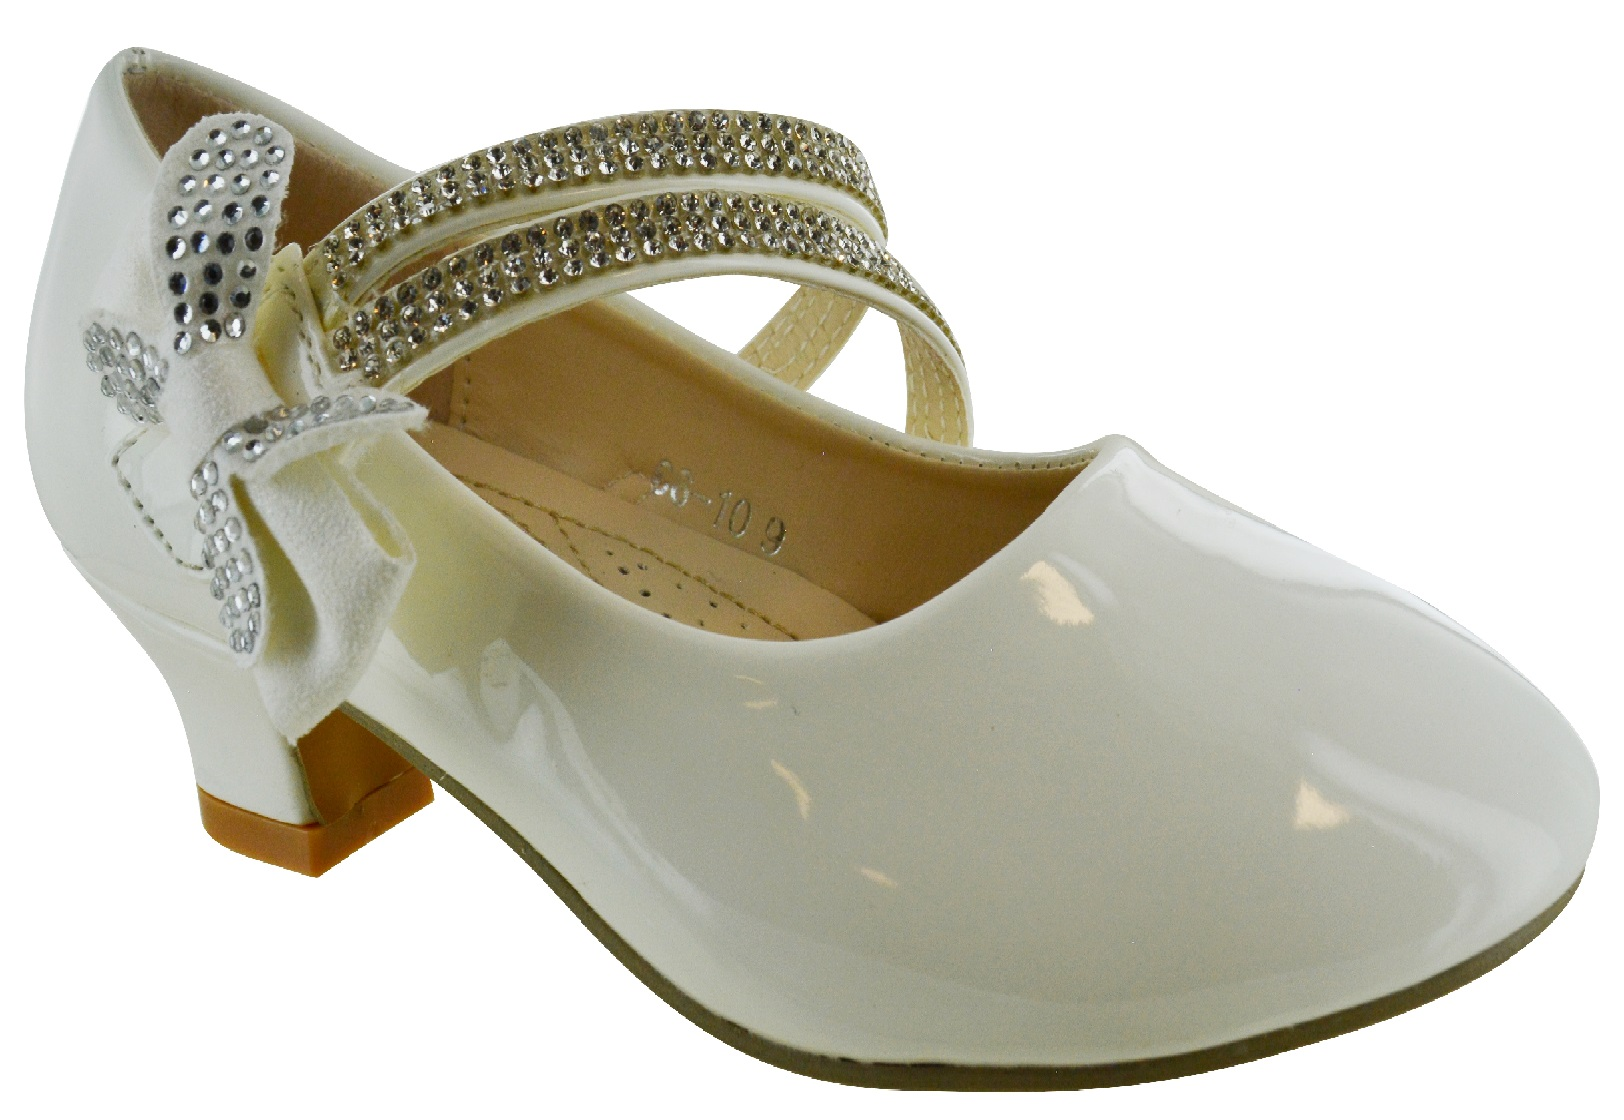 KIDS-GIRLS-CHILDRENS-HIGH-LOW-MID-HEEL-BOW-WEDDING-BRIDESMAID-PARTY-SANDALS-SHOE thumbnail 6